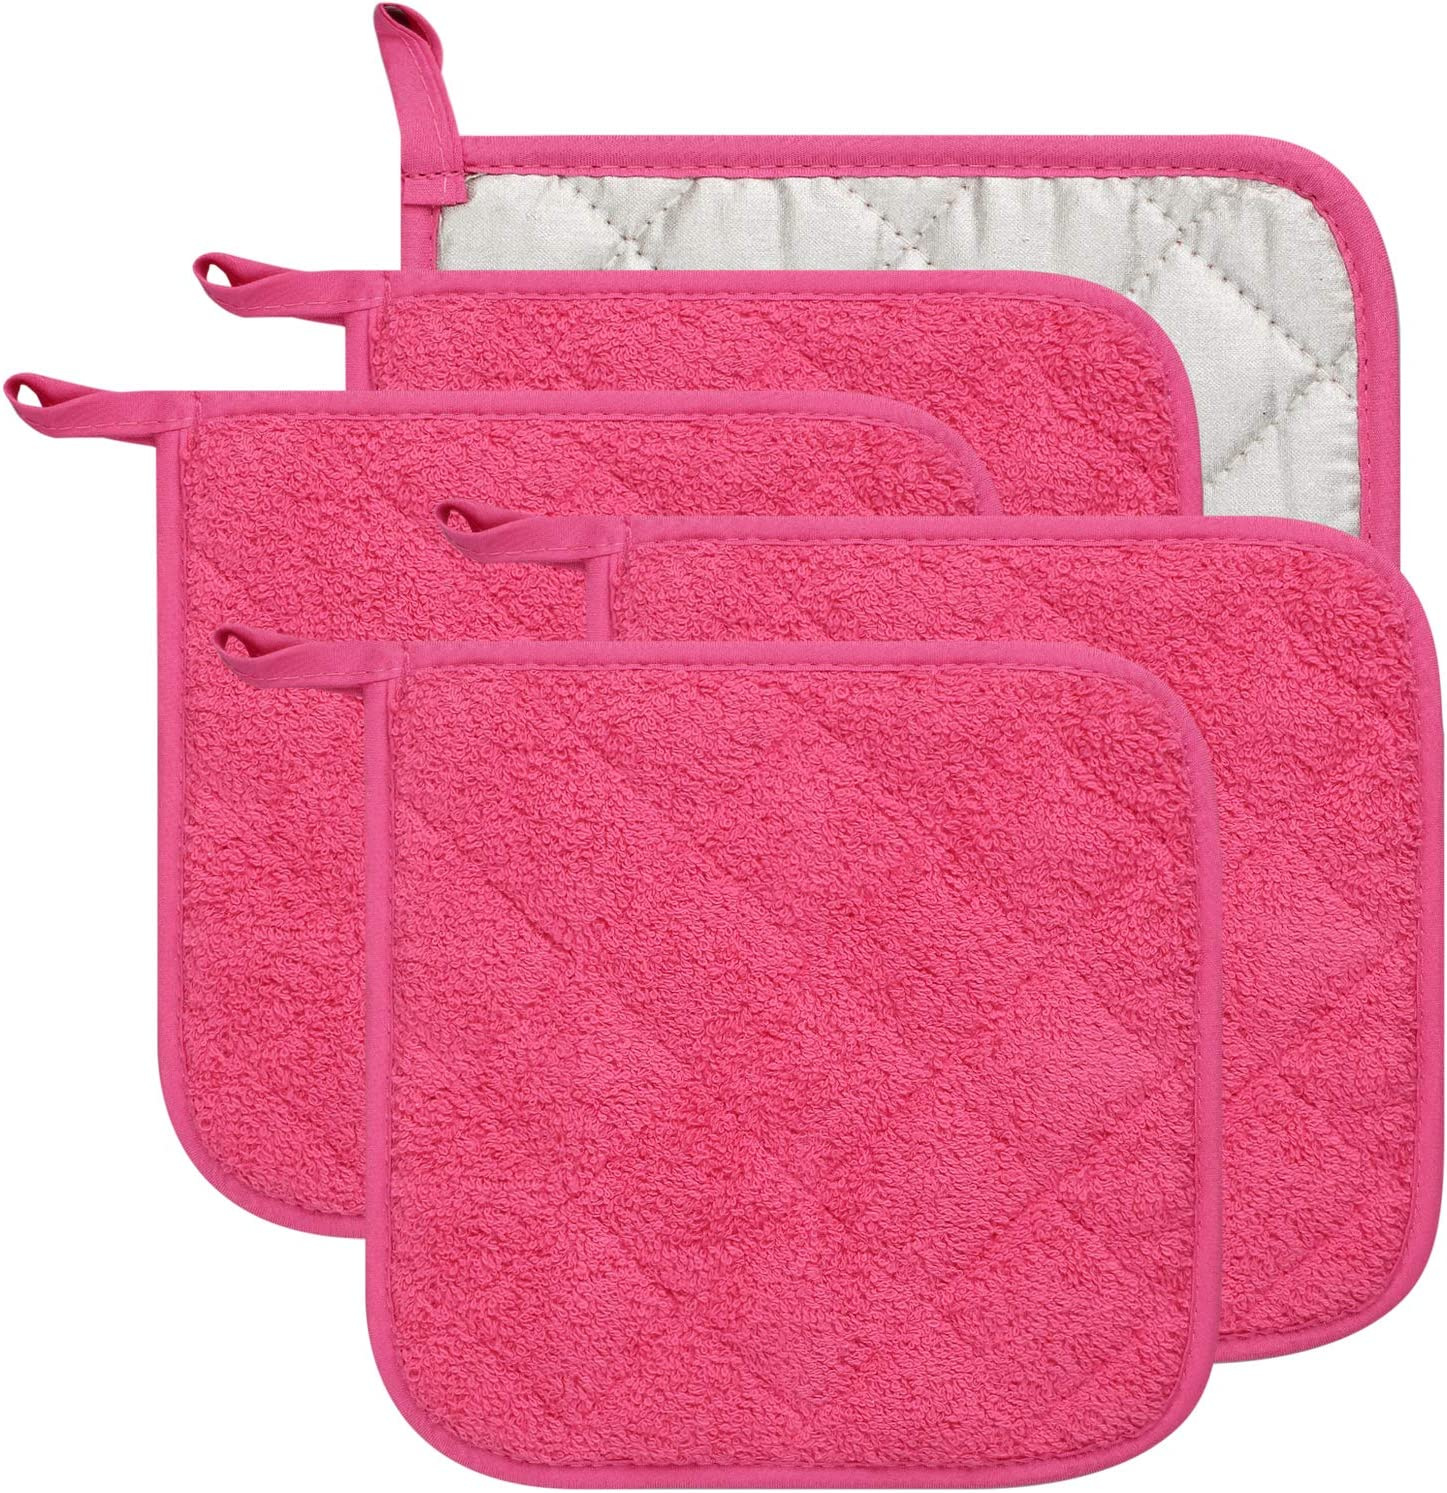 Lifaith 100% Cotton Kitchen Everyday Basic Terry Pot Holder Heat Resistant Coaster Potholder for Cooking and Baking Set of 5 (Dark Pink, Potholder)